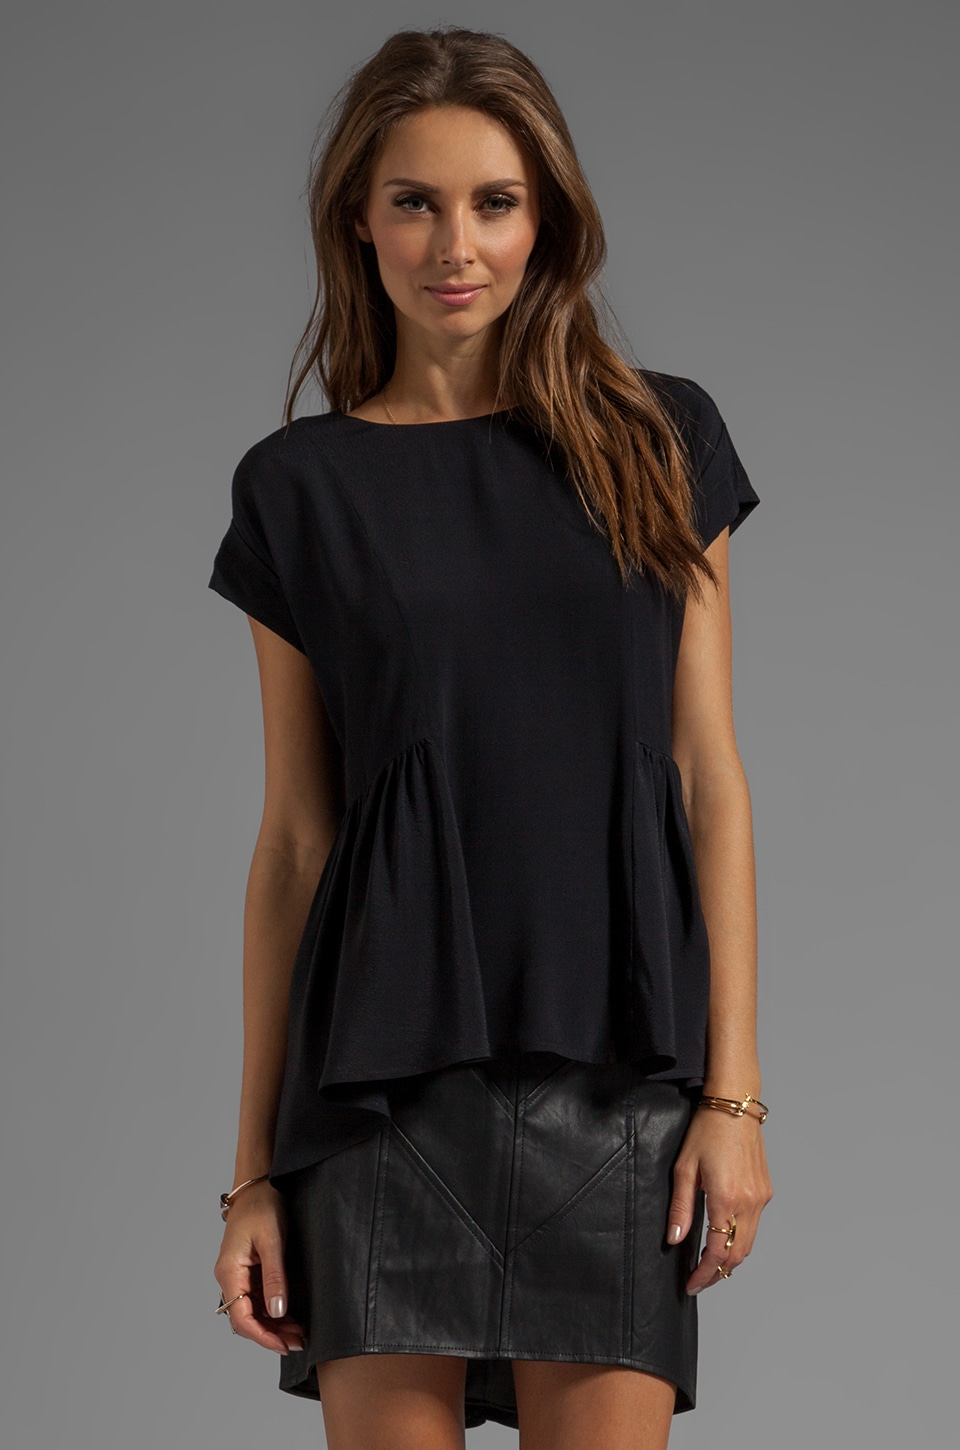 C/MEO Dandelion Top in Black